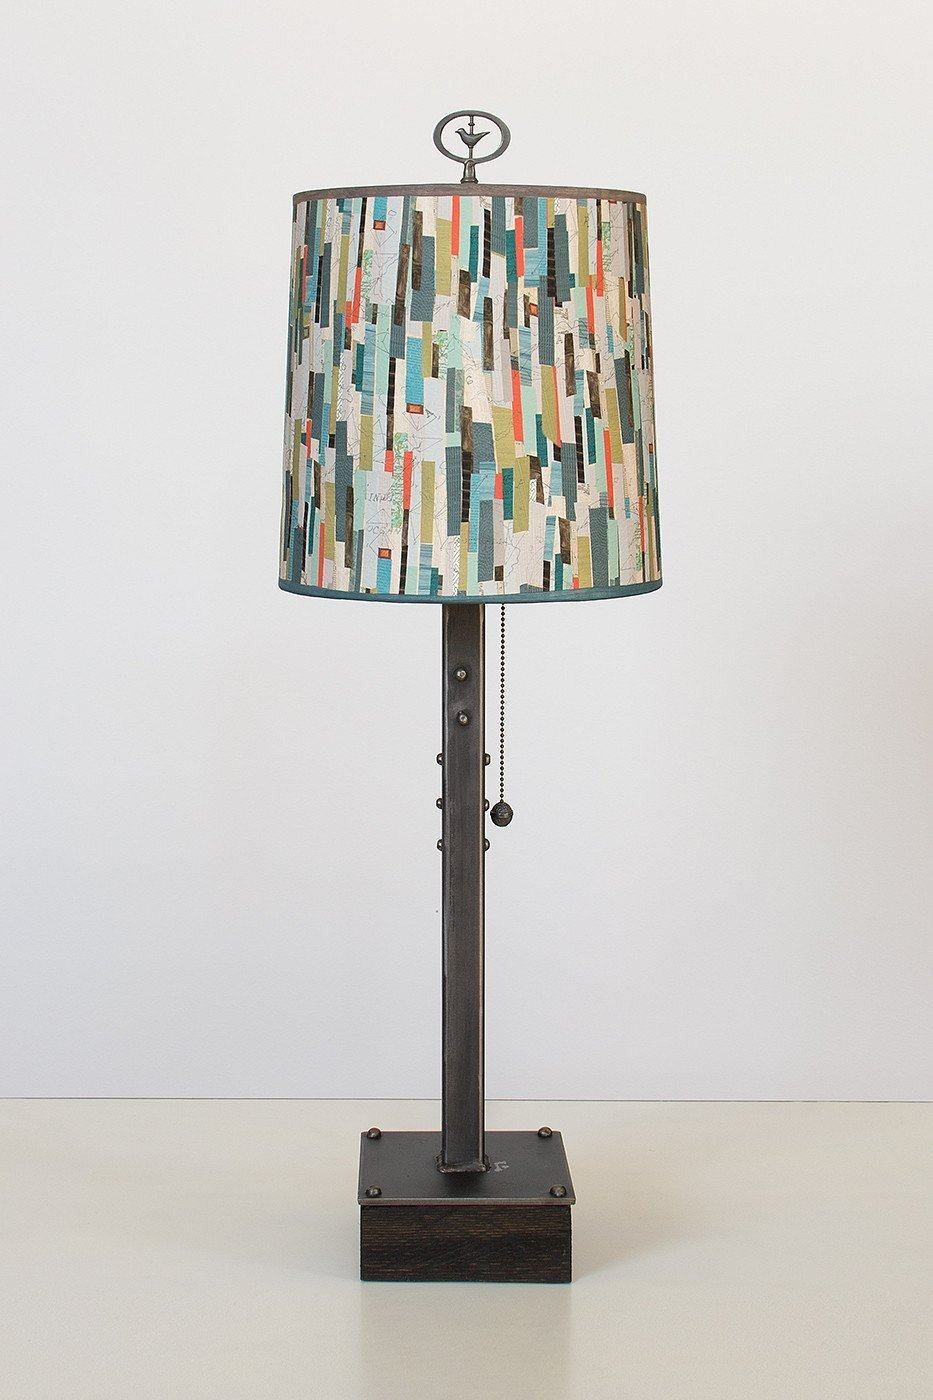 Steel Table Lamp on Wood with Medium Drum Shade in Papers